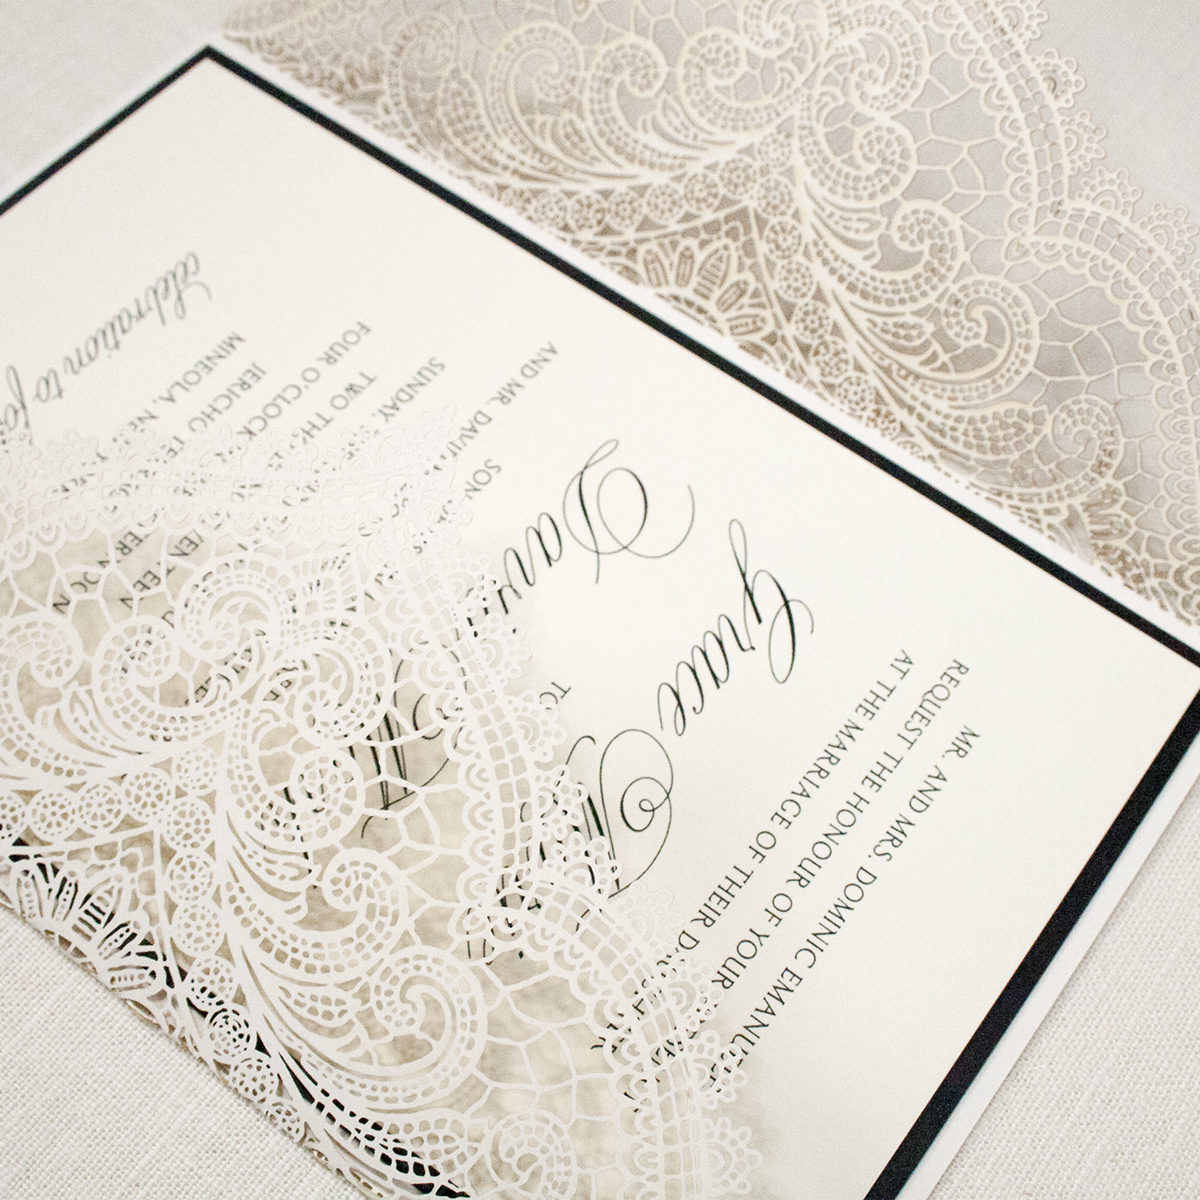 Formal Lasercut Wedding Invitation, Black thermography with ivory lasercut gatefold